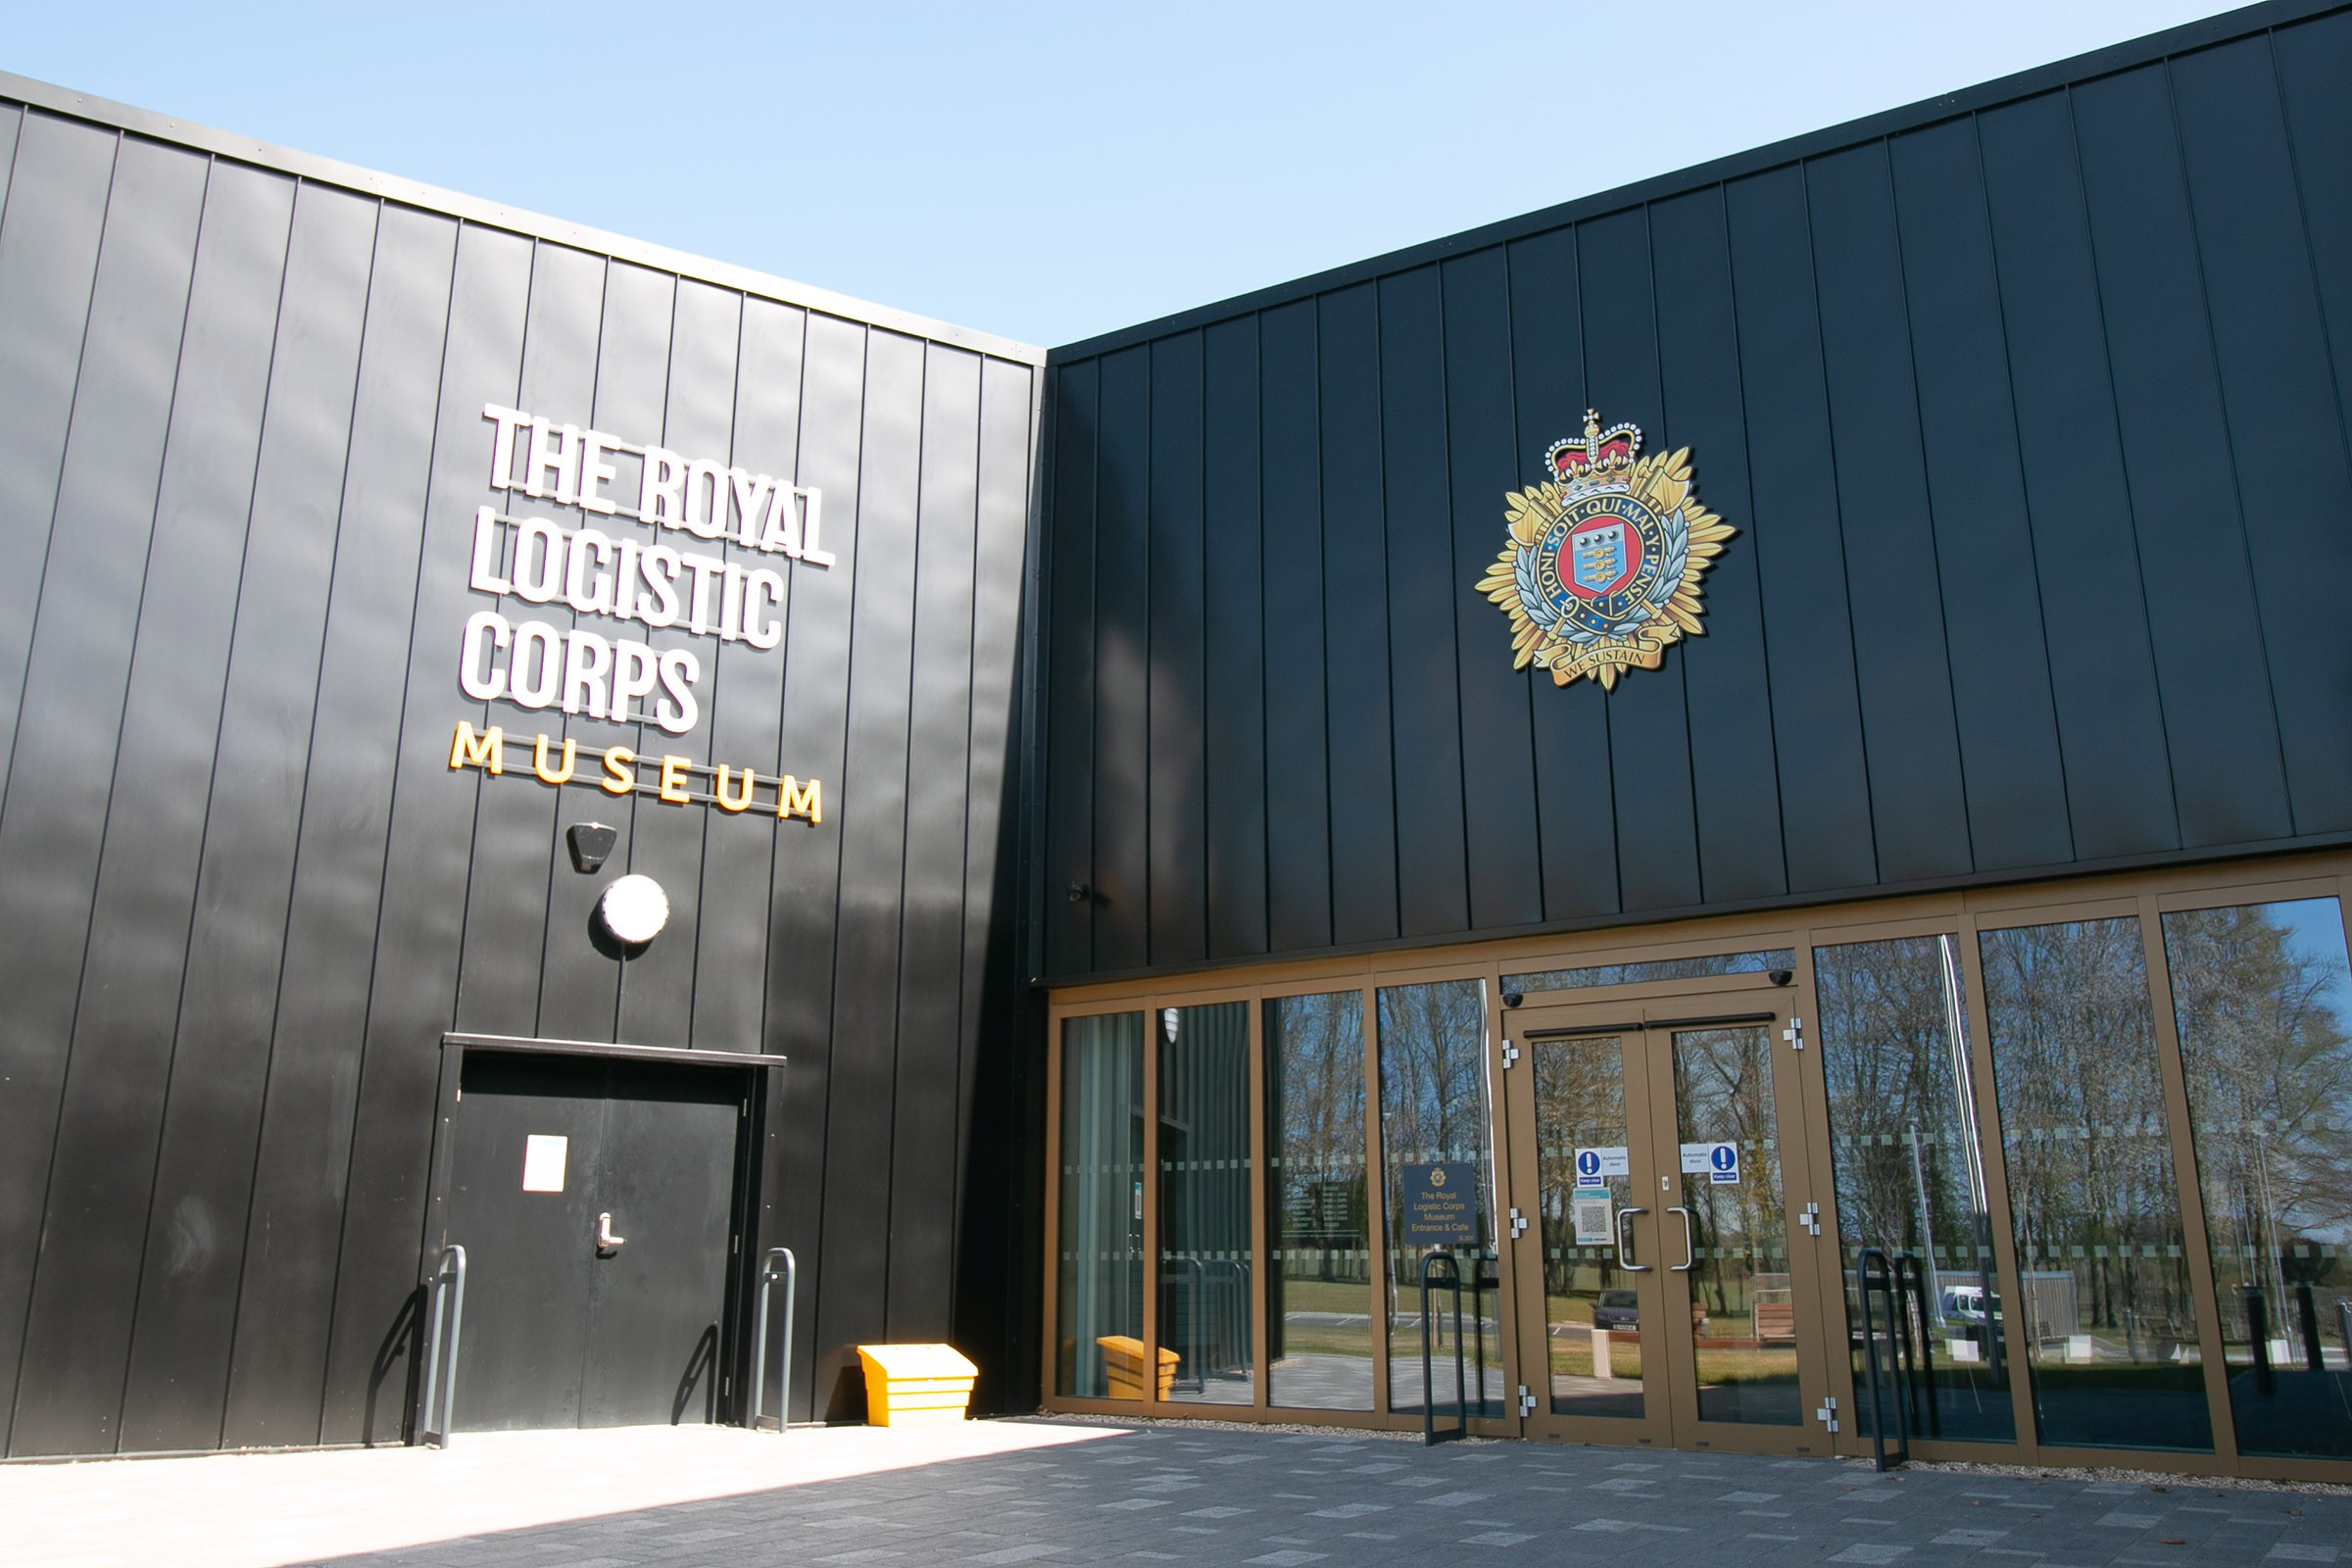 The Royal Logistic Corps Museum half term Winchester Hampshire